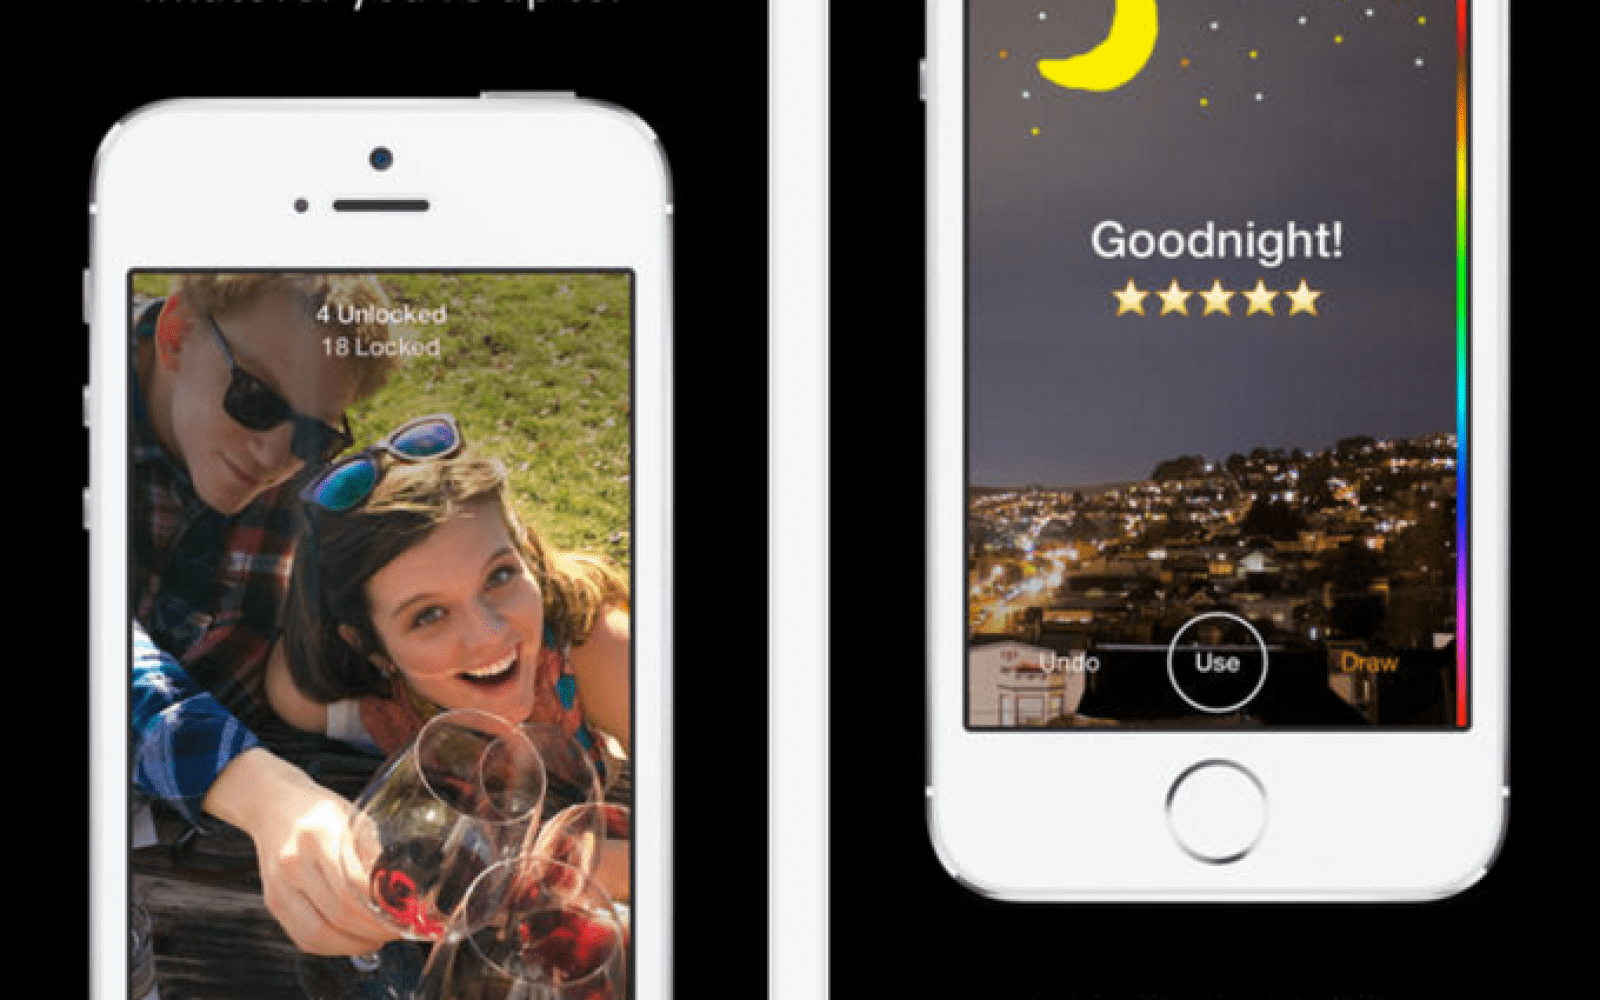 Facebook's Snapchat competitor arrives on the App Store, then appropriately disappears